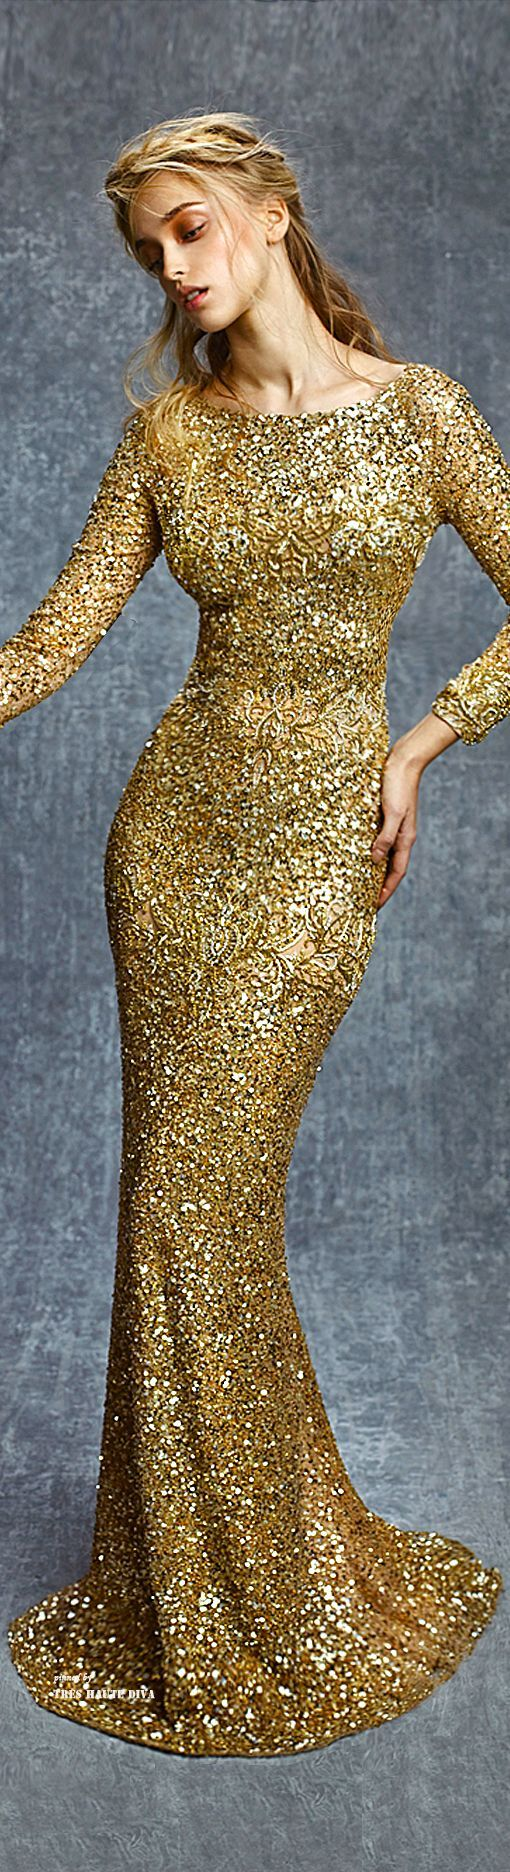 .mother of the bride's dress idea